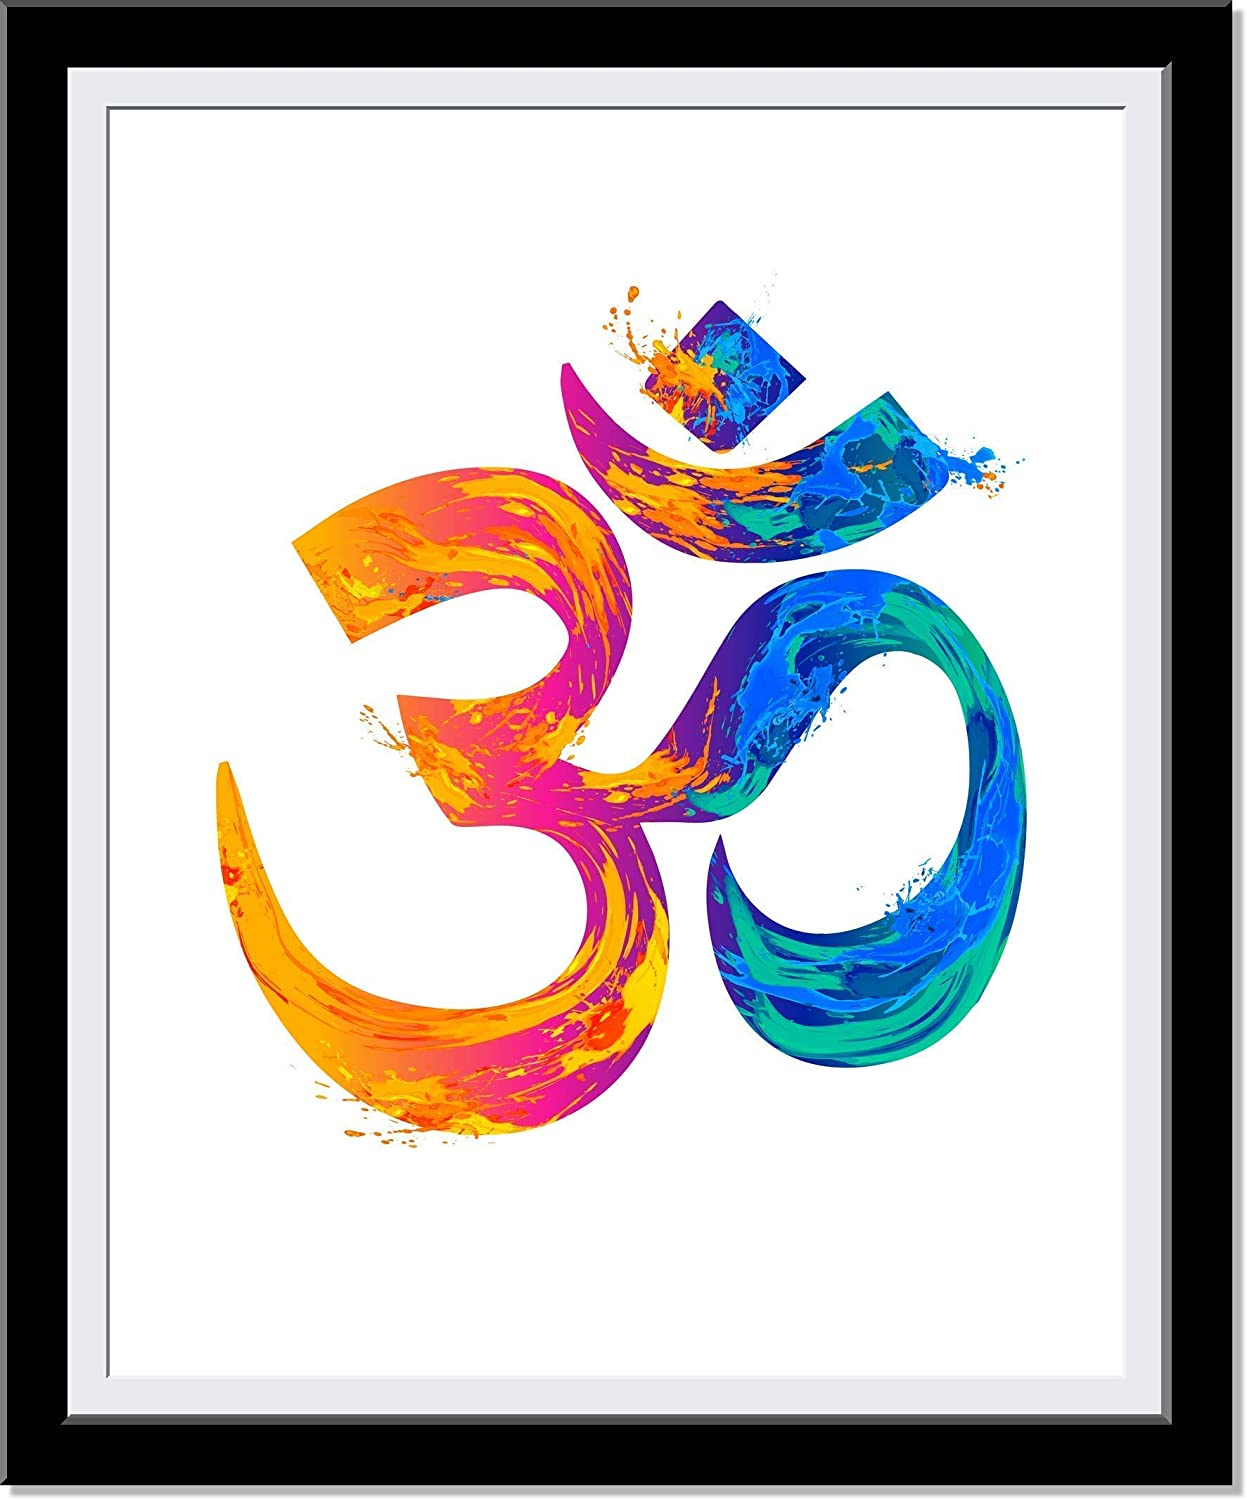 Om Wall Decor, Watercolor Aum Painting - Colorful Vibrant Fire And Water Brush Strokes, Gift For Meditation, Yoga Or Zen - Boho Chic Home Decor Or Yoga Studio - 8 X 10 Unframed…